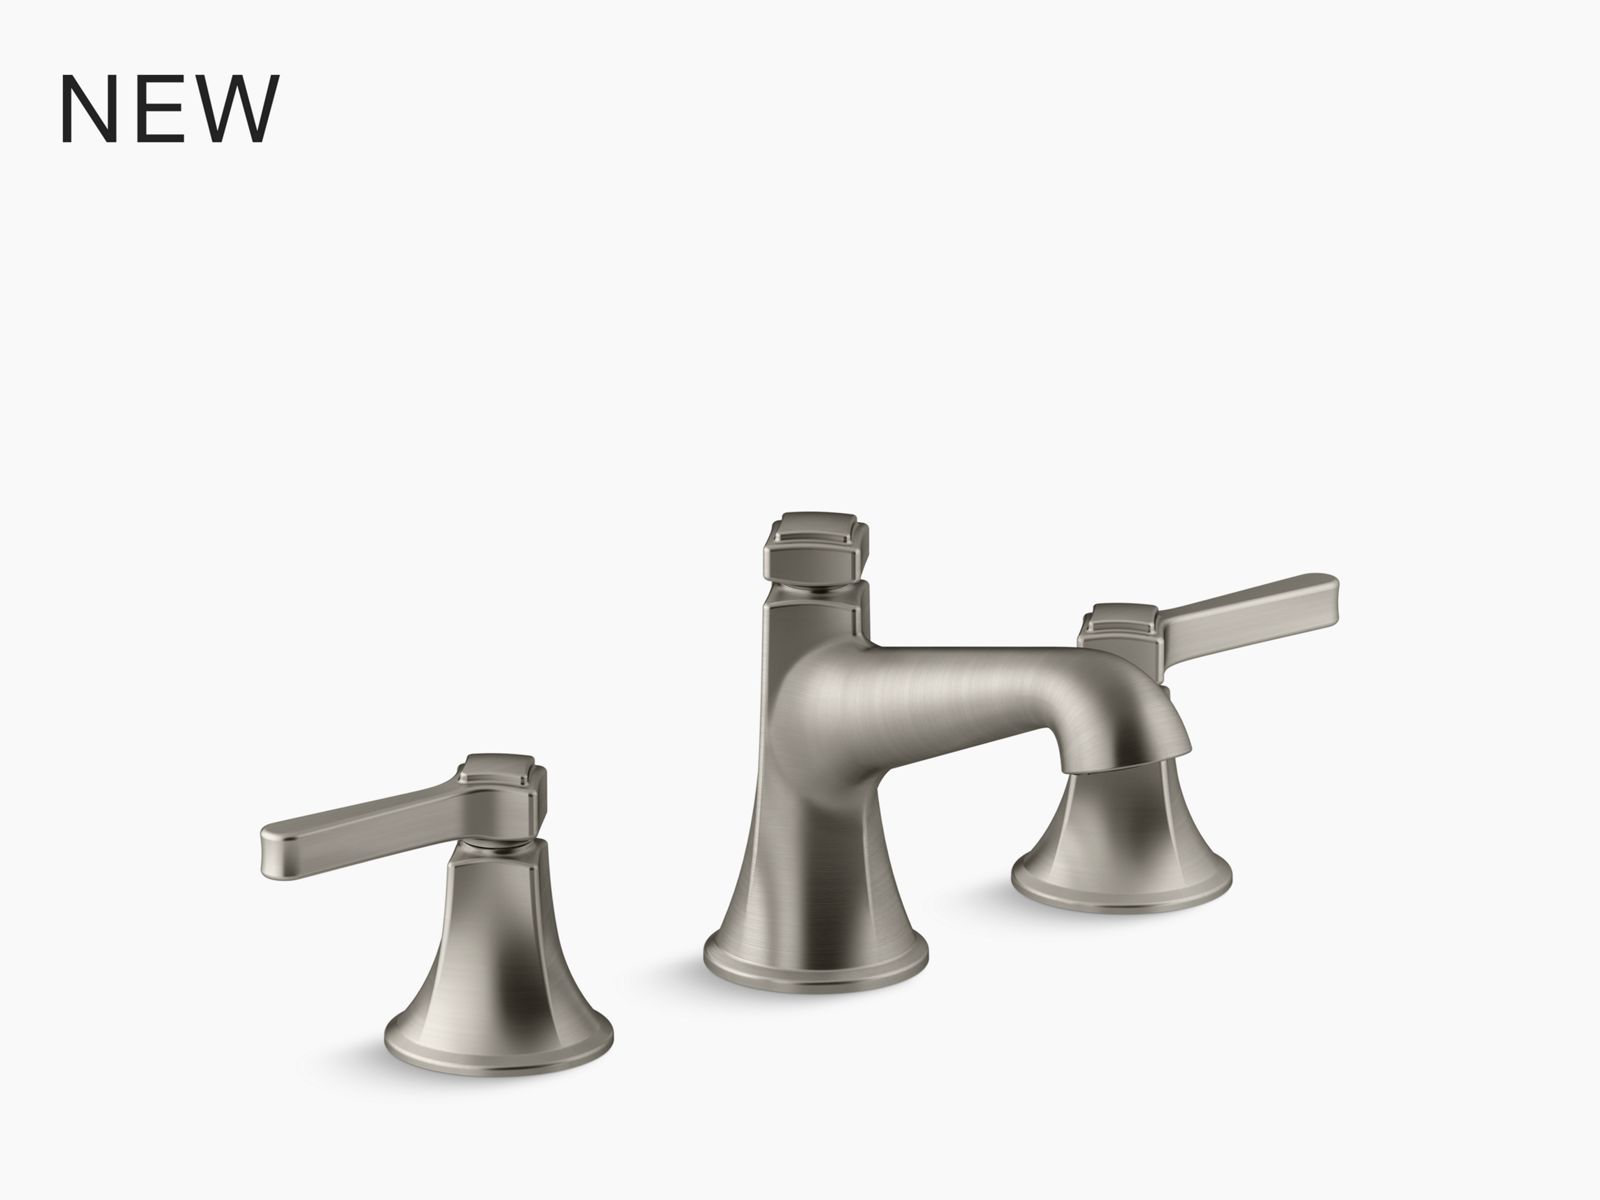 coralais single handle kitchen sink faucet with sidespray through escutcheon and 8 1 2 swing spout project pack